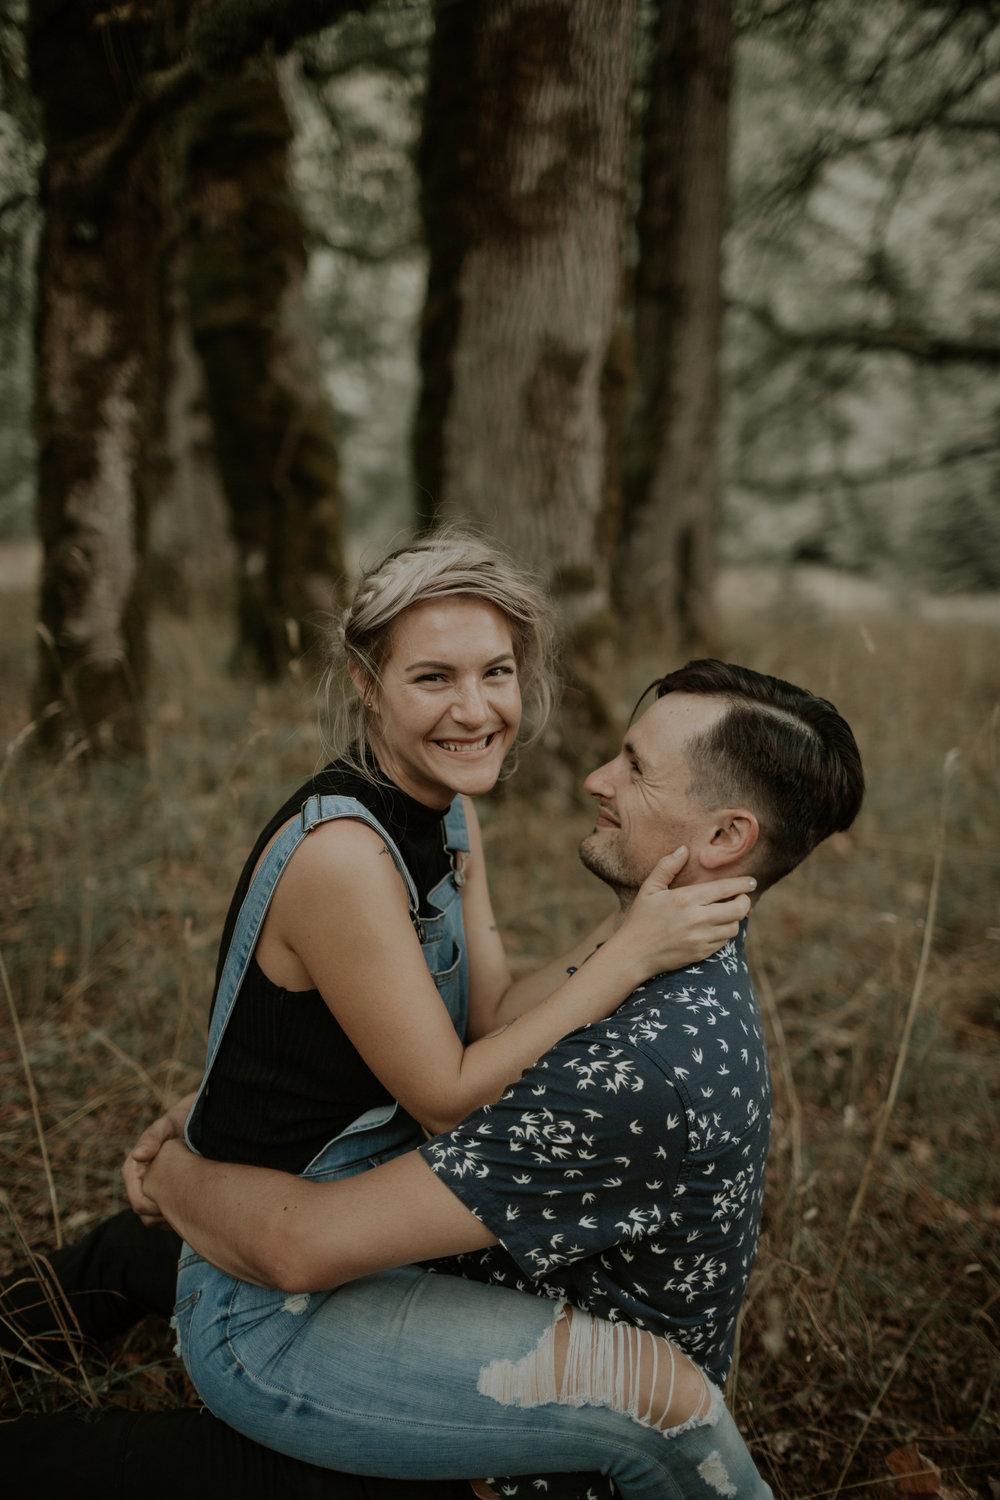 PNW-Olympic National Park-Portrait-Port-Angeles-Washington-elopement-photographer-kayla-dawn-photography-kayladawnphoto-wedding-anniversary-photoshoot-olympic-peninsula-79.jpg